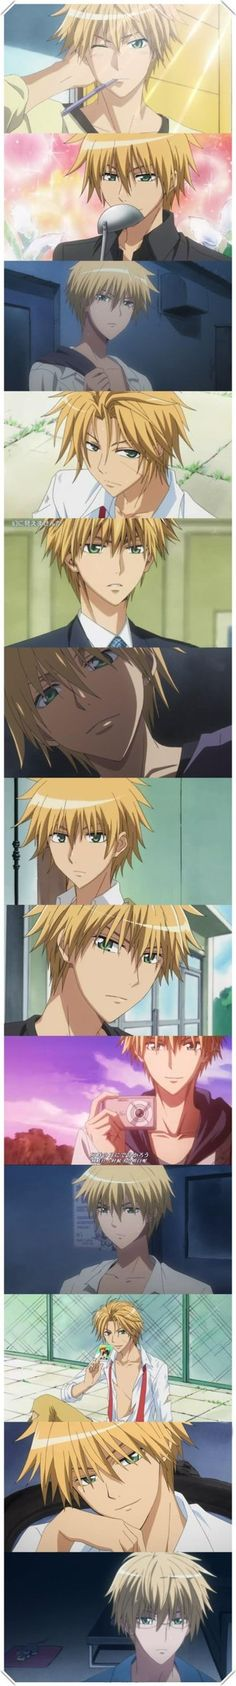 Kaichou Wa Maid-sama- Usui Takumi Lol, now tell me nobody's perfect....<<<KYYYYAAAAAA I WANT ONE IN REAL LIFE! Most girls want a man like their fathers-I WANT ONE LIKE USUI